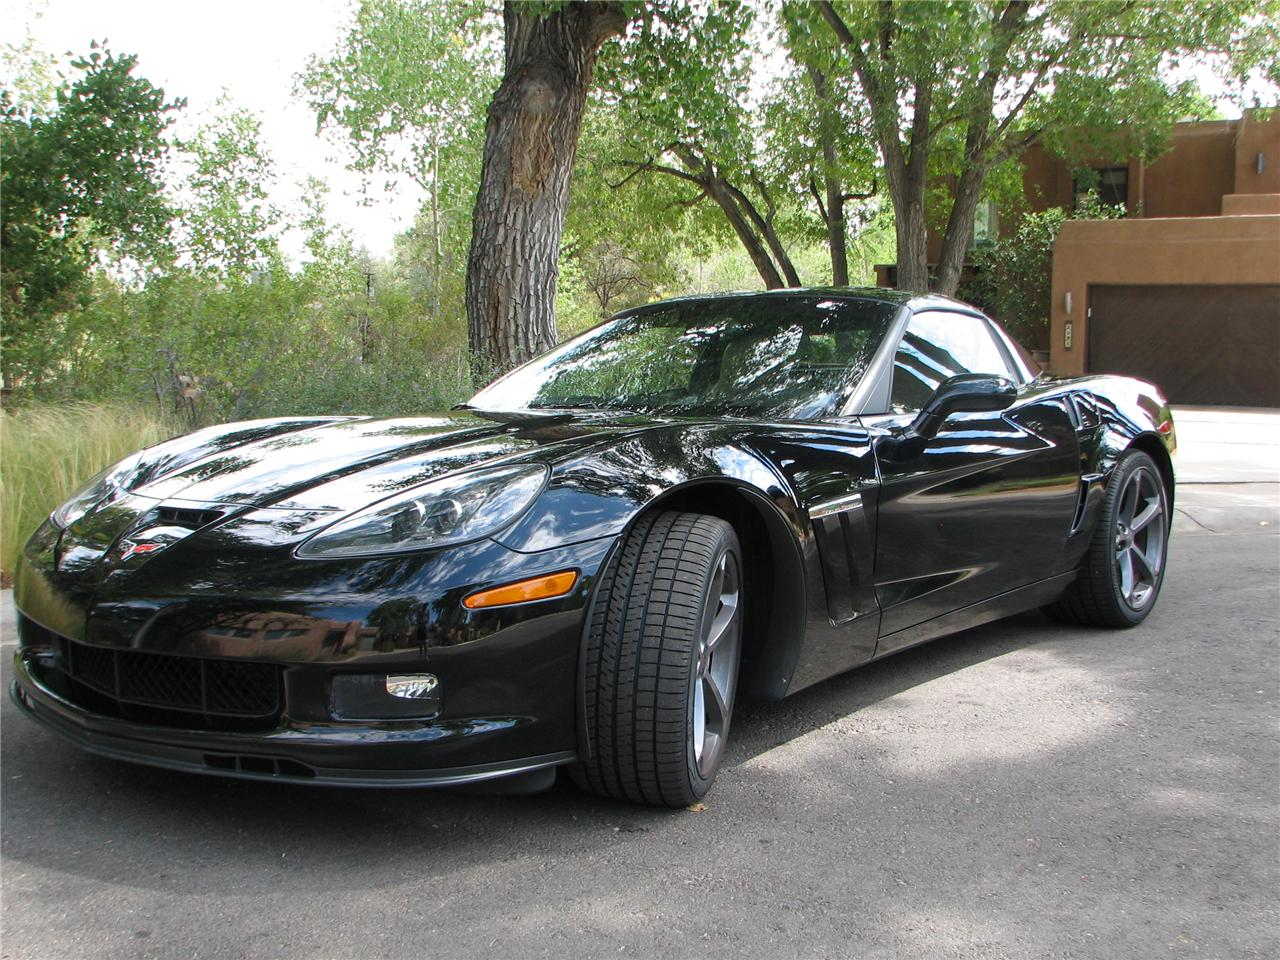 2010 chevrolet corvette grand sport coupe. Black Bedroom Furniture Sets. Home Design Ideas